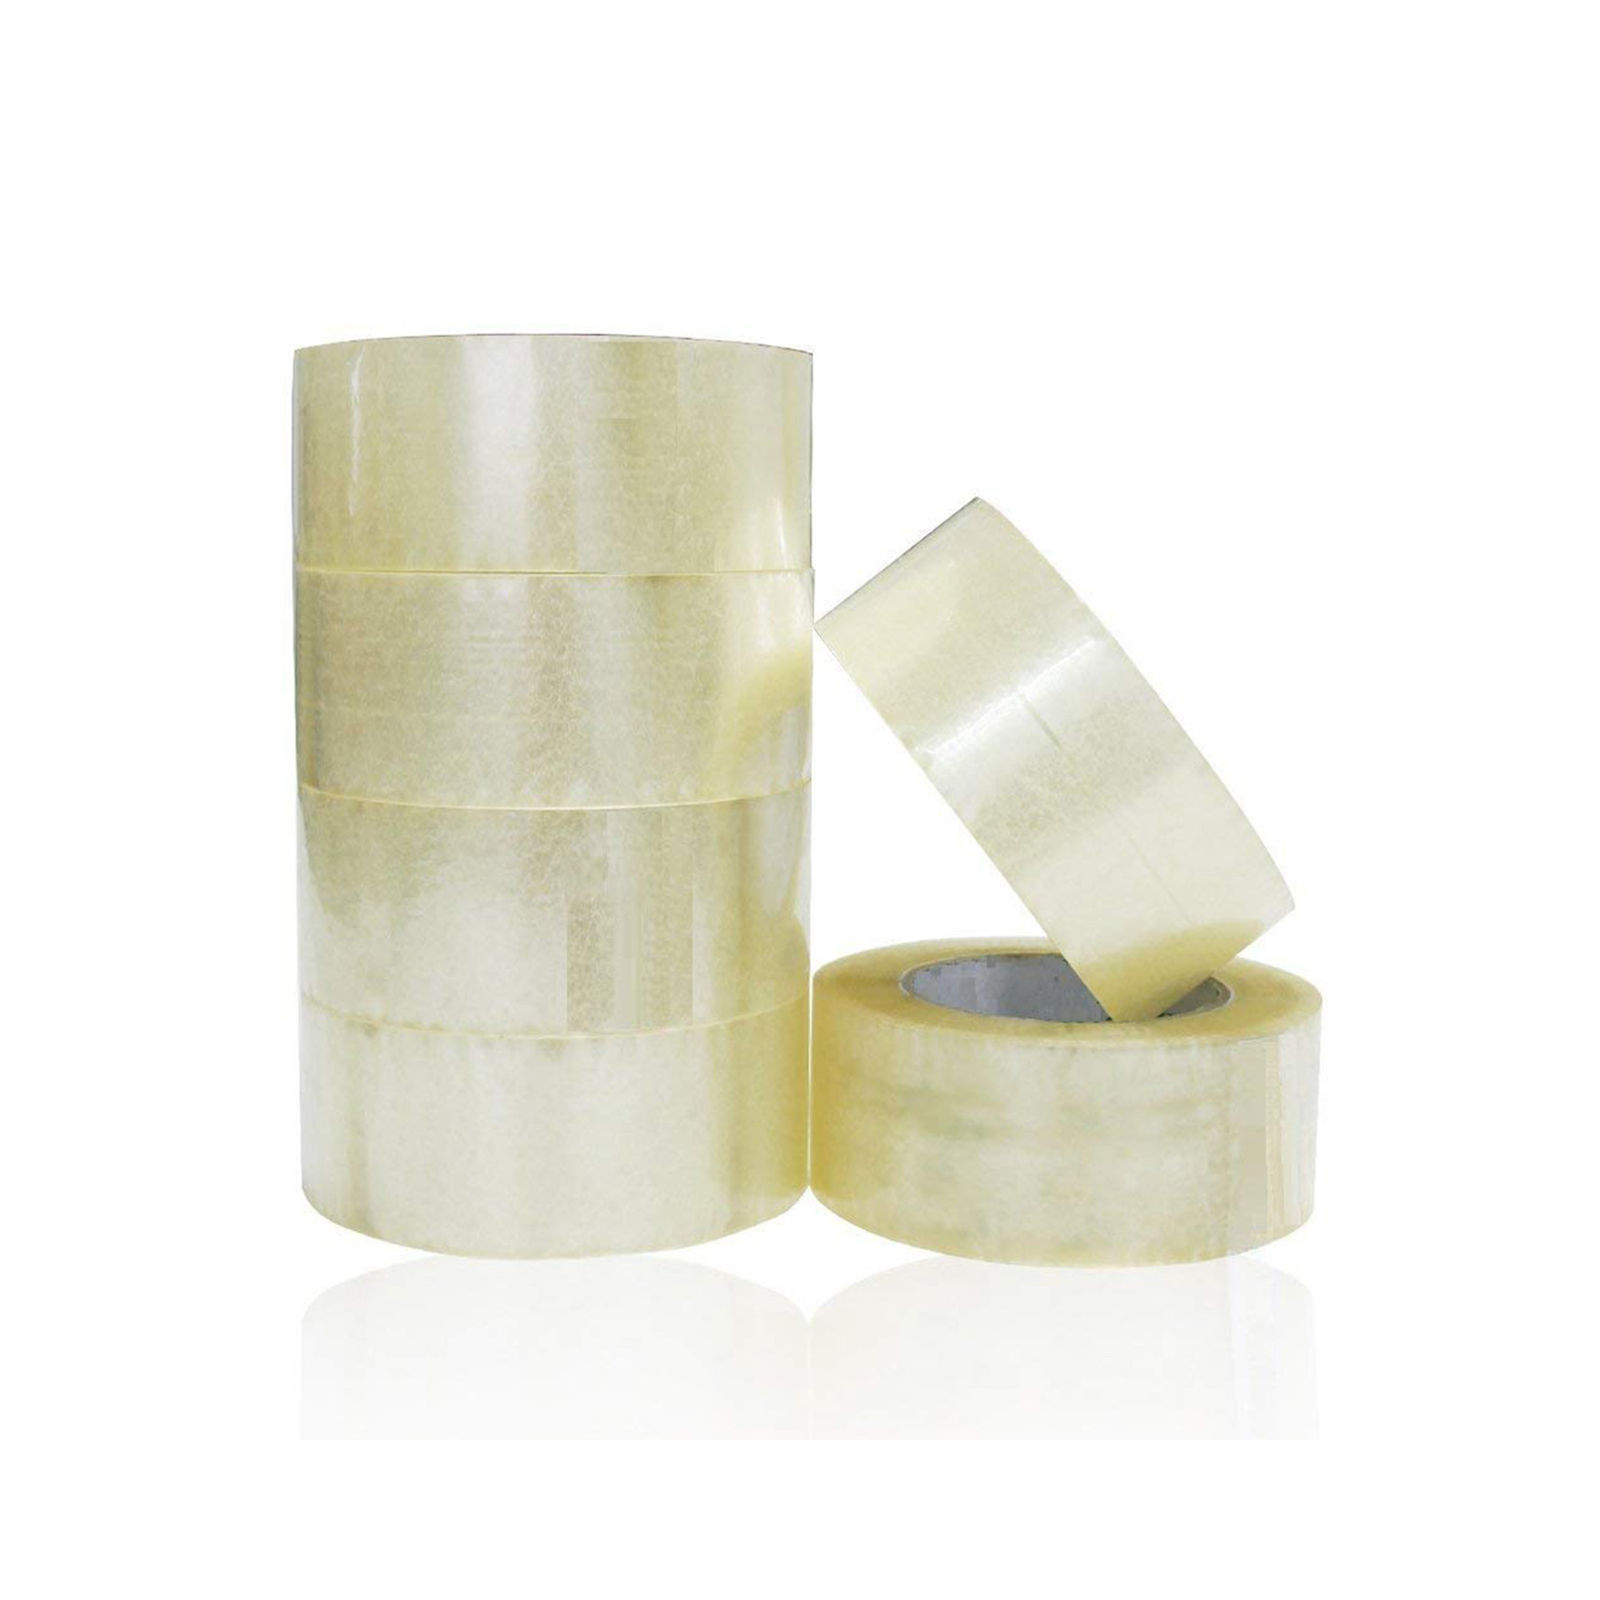 Clear Packing Tape 2 inch x 100 Yards Per Roll (6 Pack)